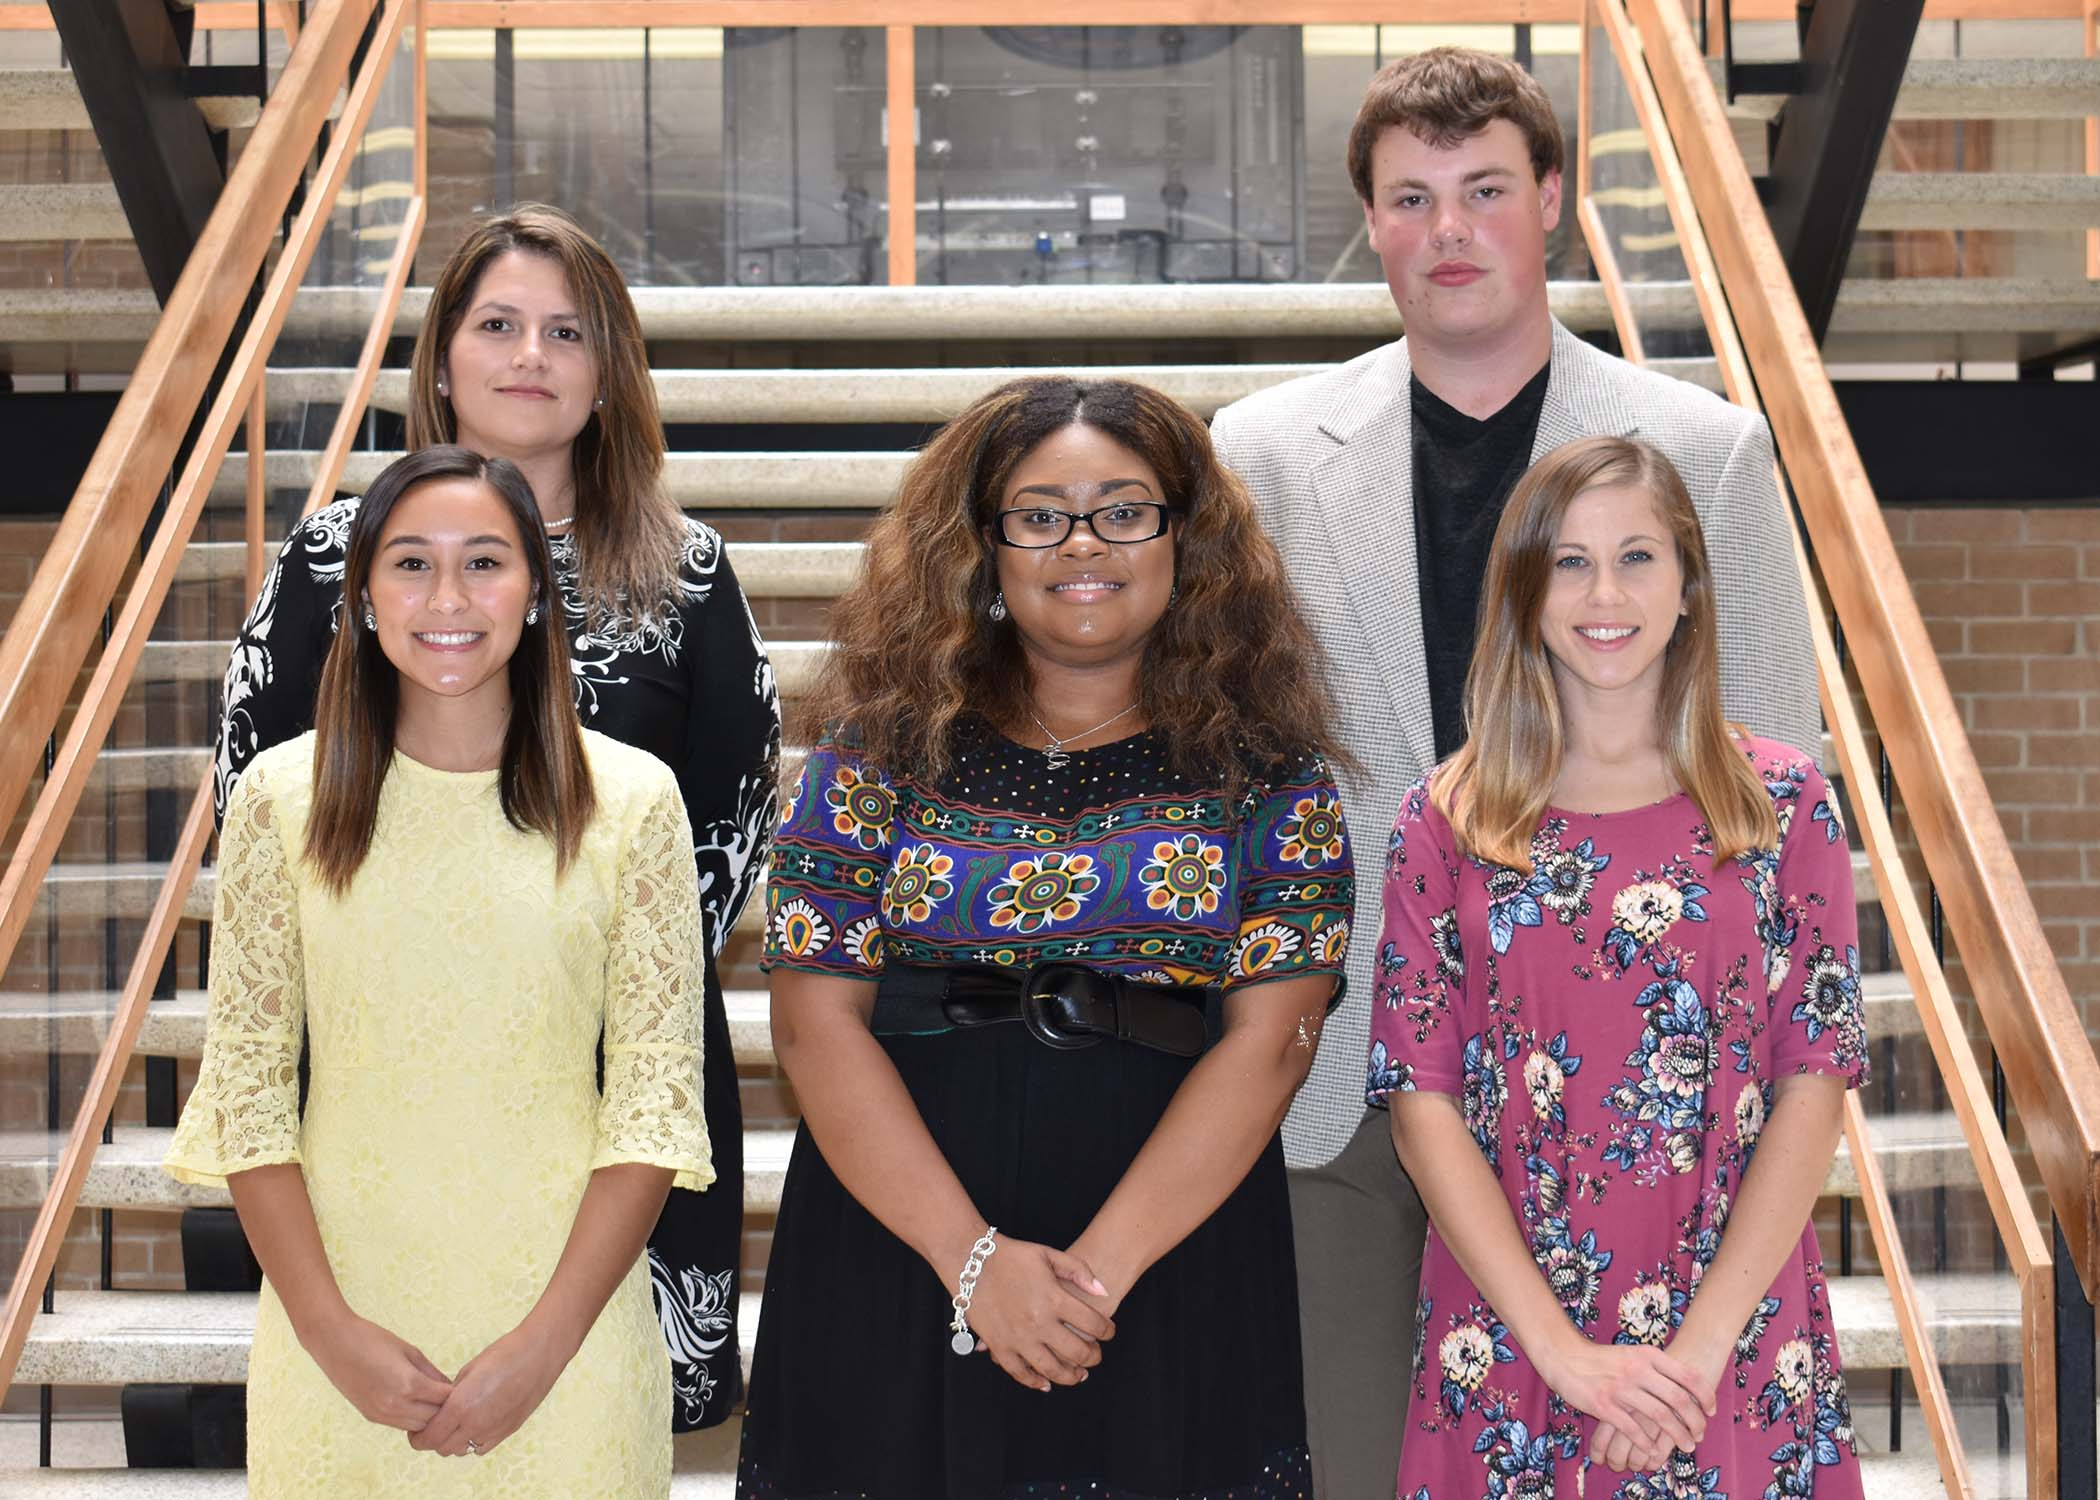 Pictured left to right are Jaide Schultz of New Bern, Harriet Taylor Herring LPN Scholarship; Briana Godette of Kinston, Richard and Edna Whaley Scholarship; and Hannah Turner of Pink Hill, Glenn F. and Joyce Gilbert Cherry Scholarship; back row, Angelica Nunez of Kinston, Nell and Ford Dabney Scholarship; and Kevin Williets Jr. of Winnabow, Jack P. Hankins Scholarship.